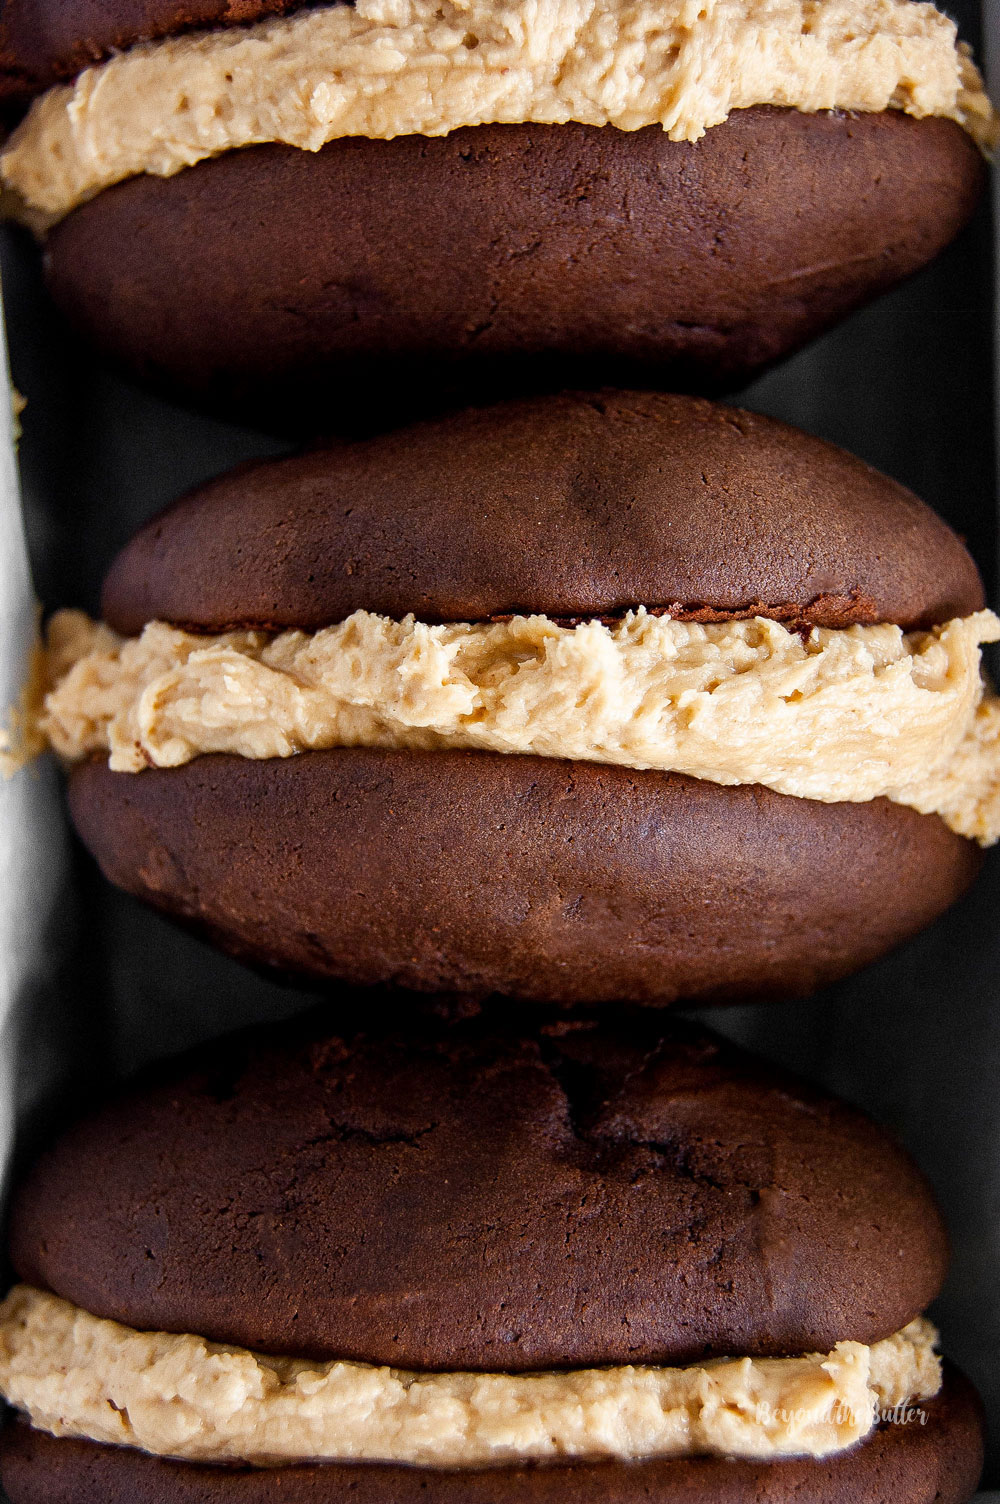 Chocolate-Peanut Butter Whoopie Pies | All Images © Beyond the Butter, LLC